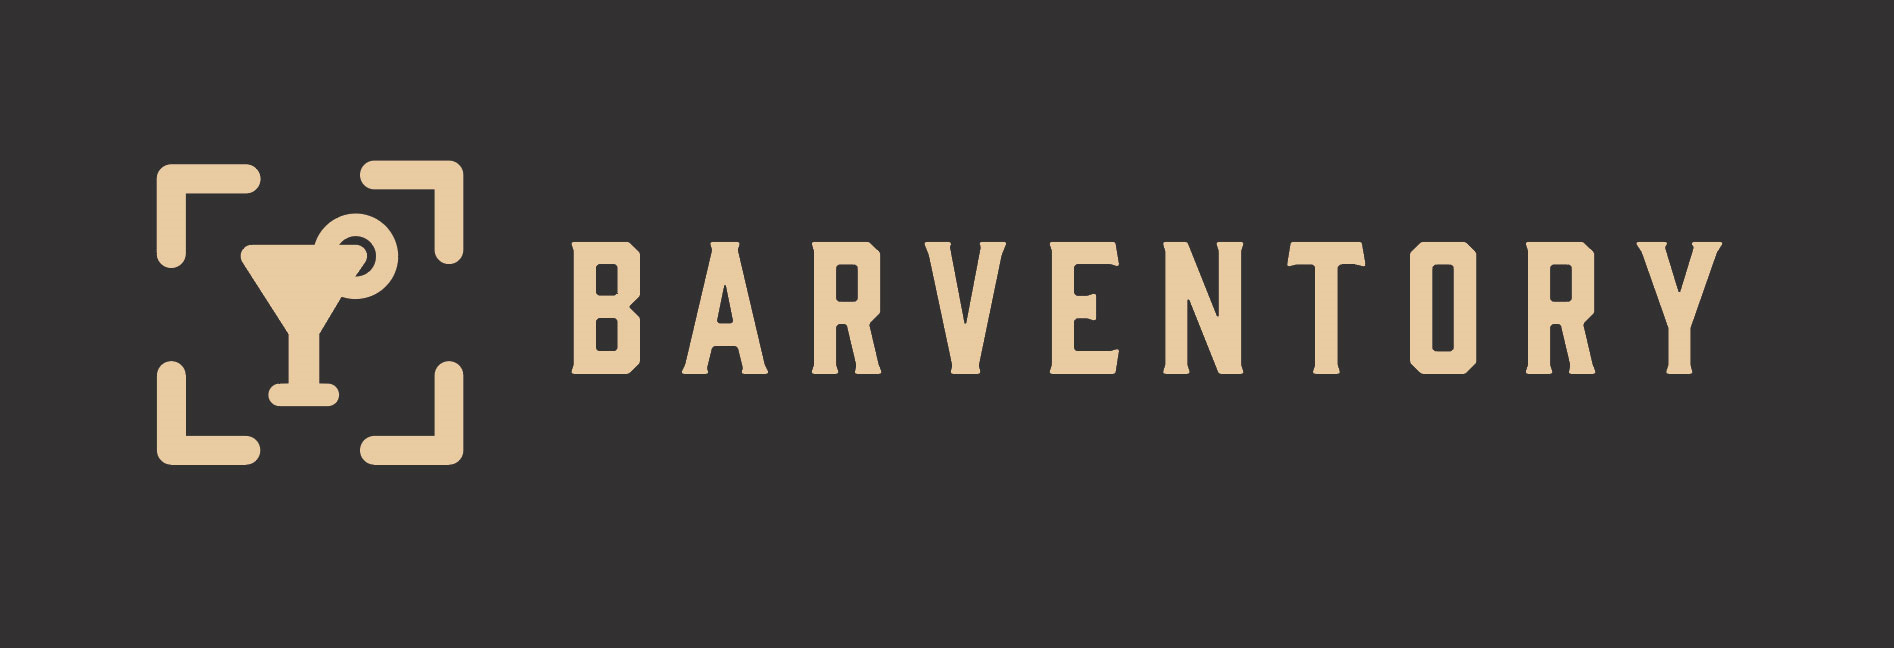 Barventory Corp